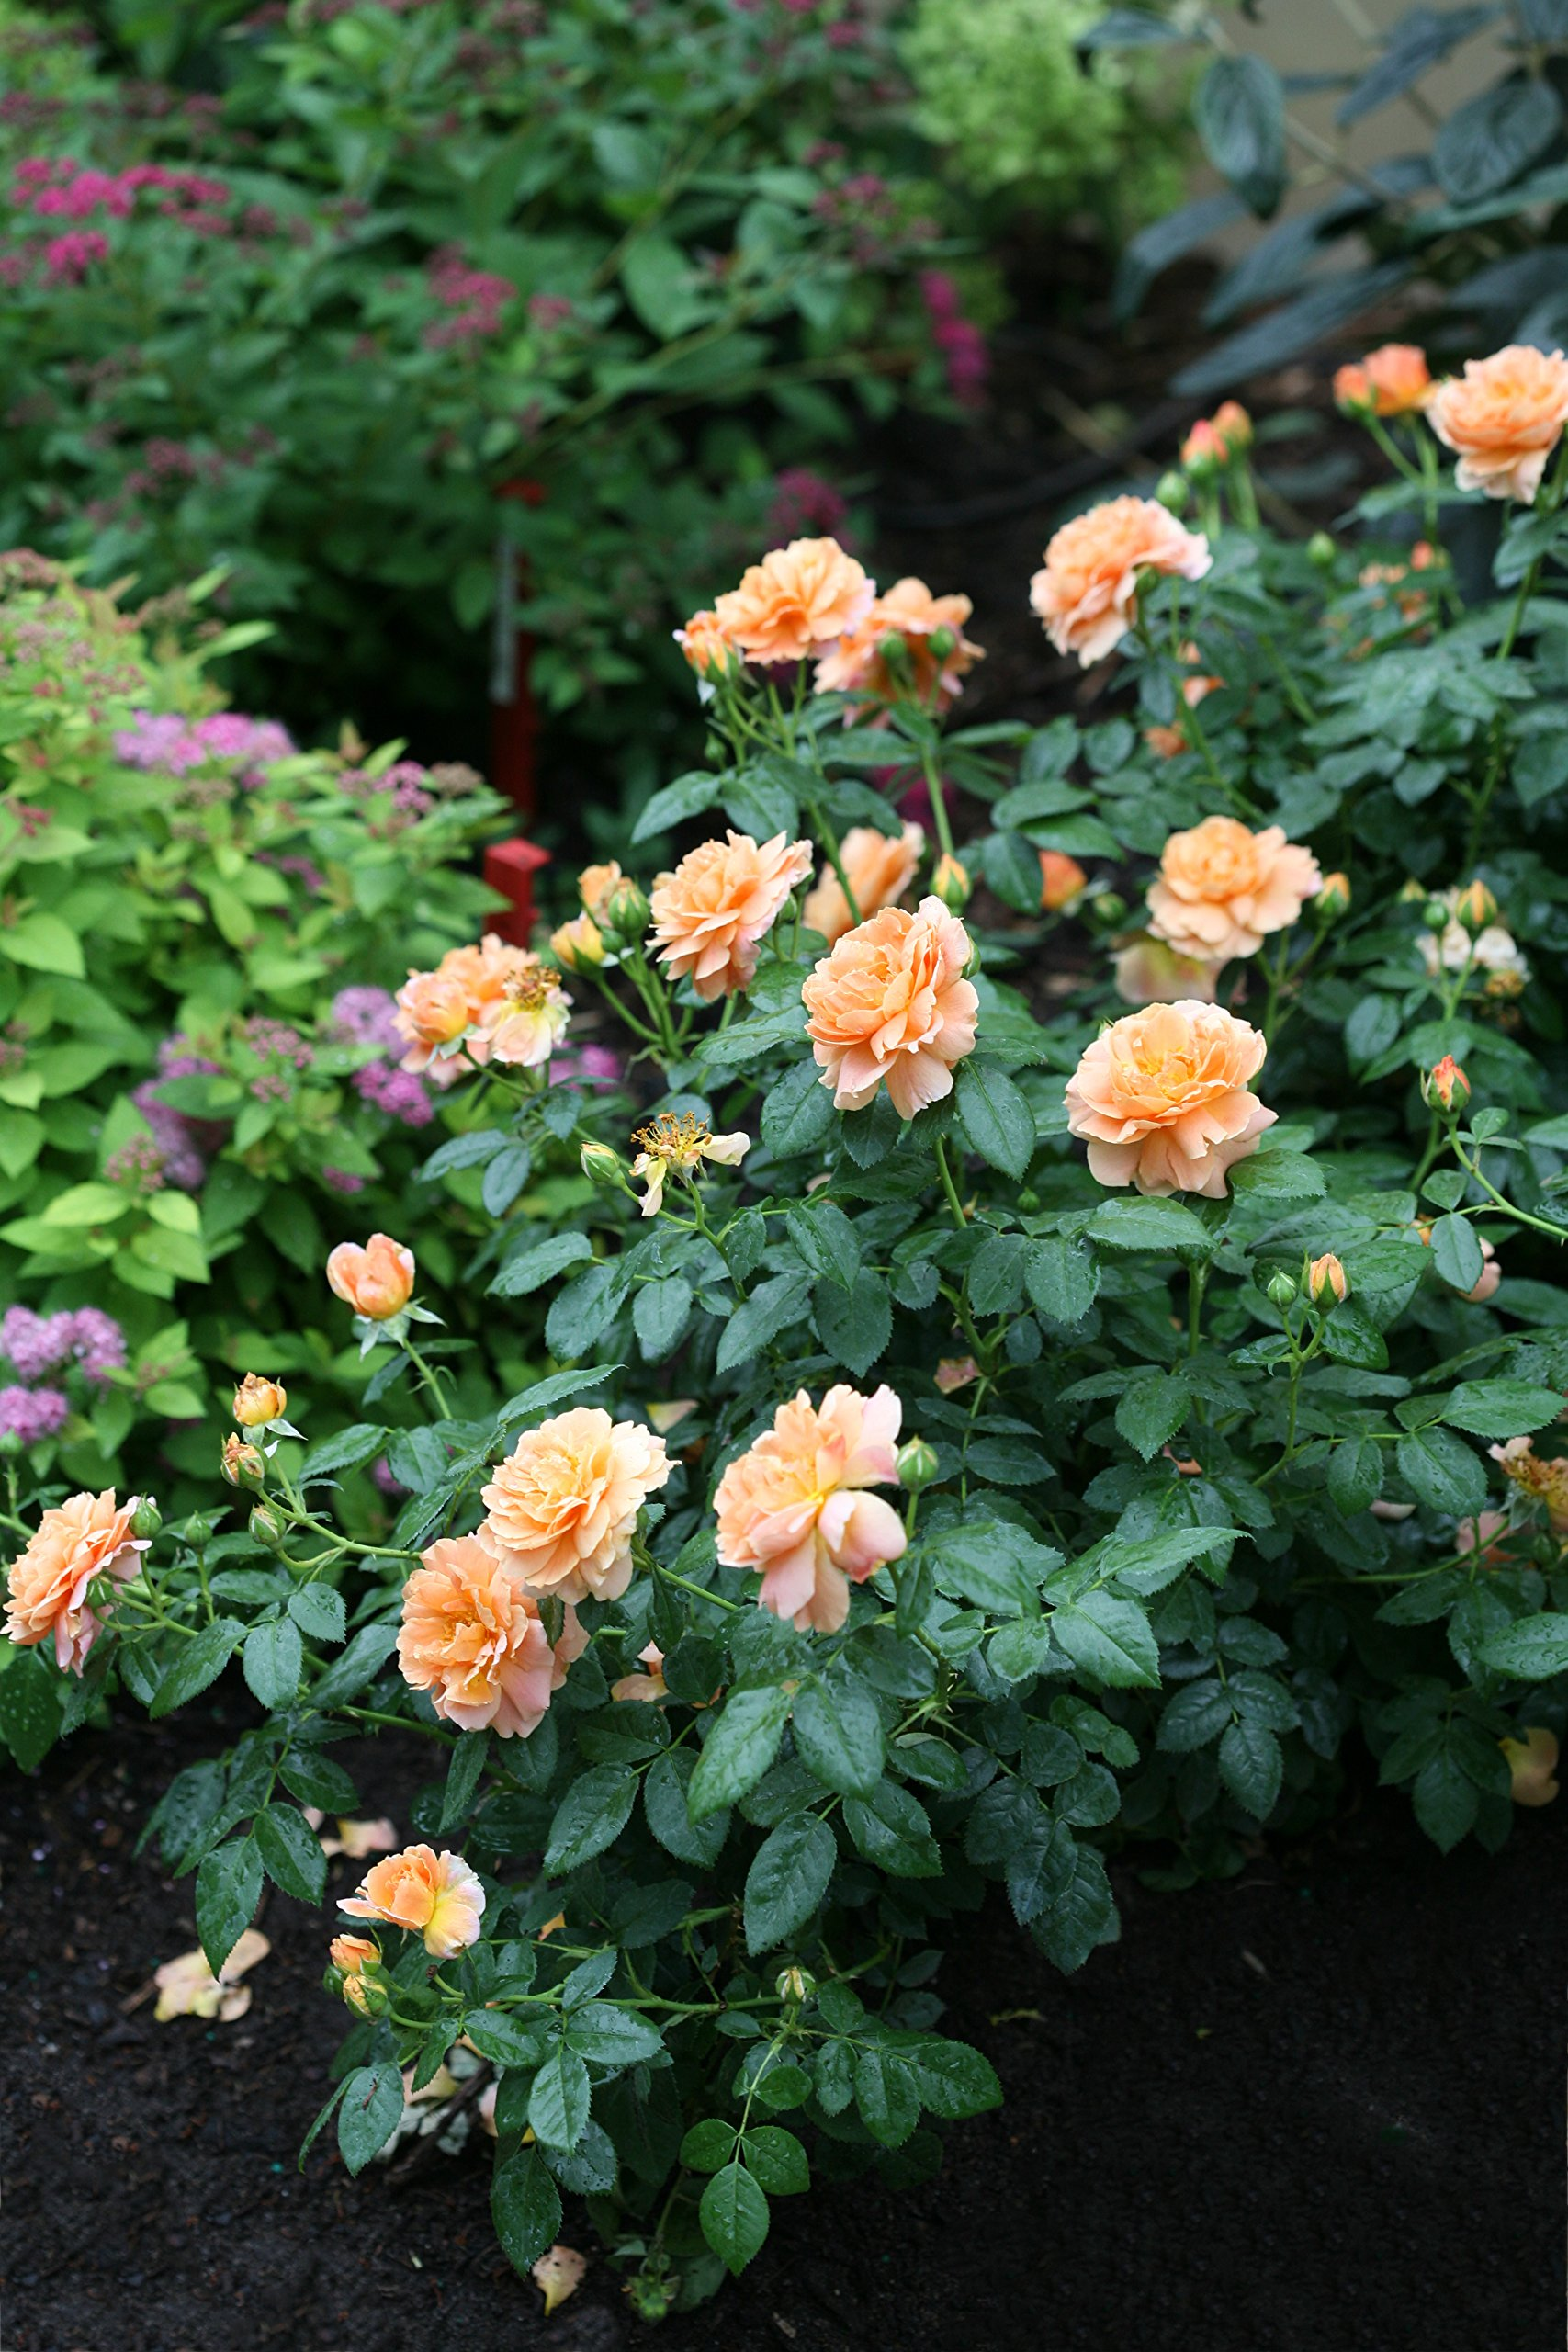 At Last Rose (Rosa) Live Shrub, Orange Flowers, 4.5 in. Quart by Proven Winners (Image #8)